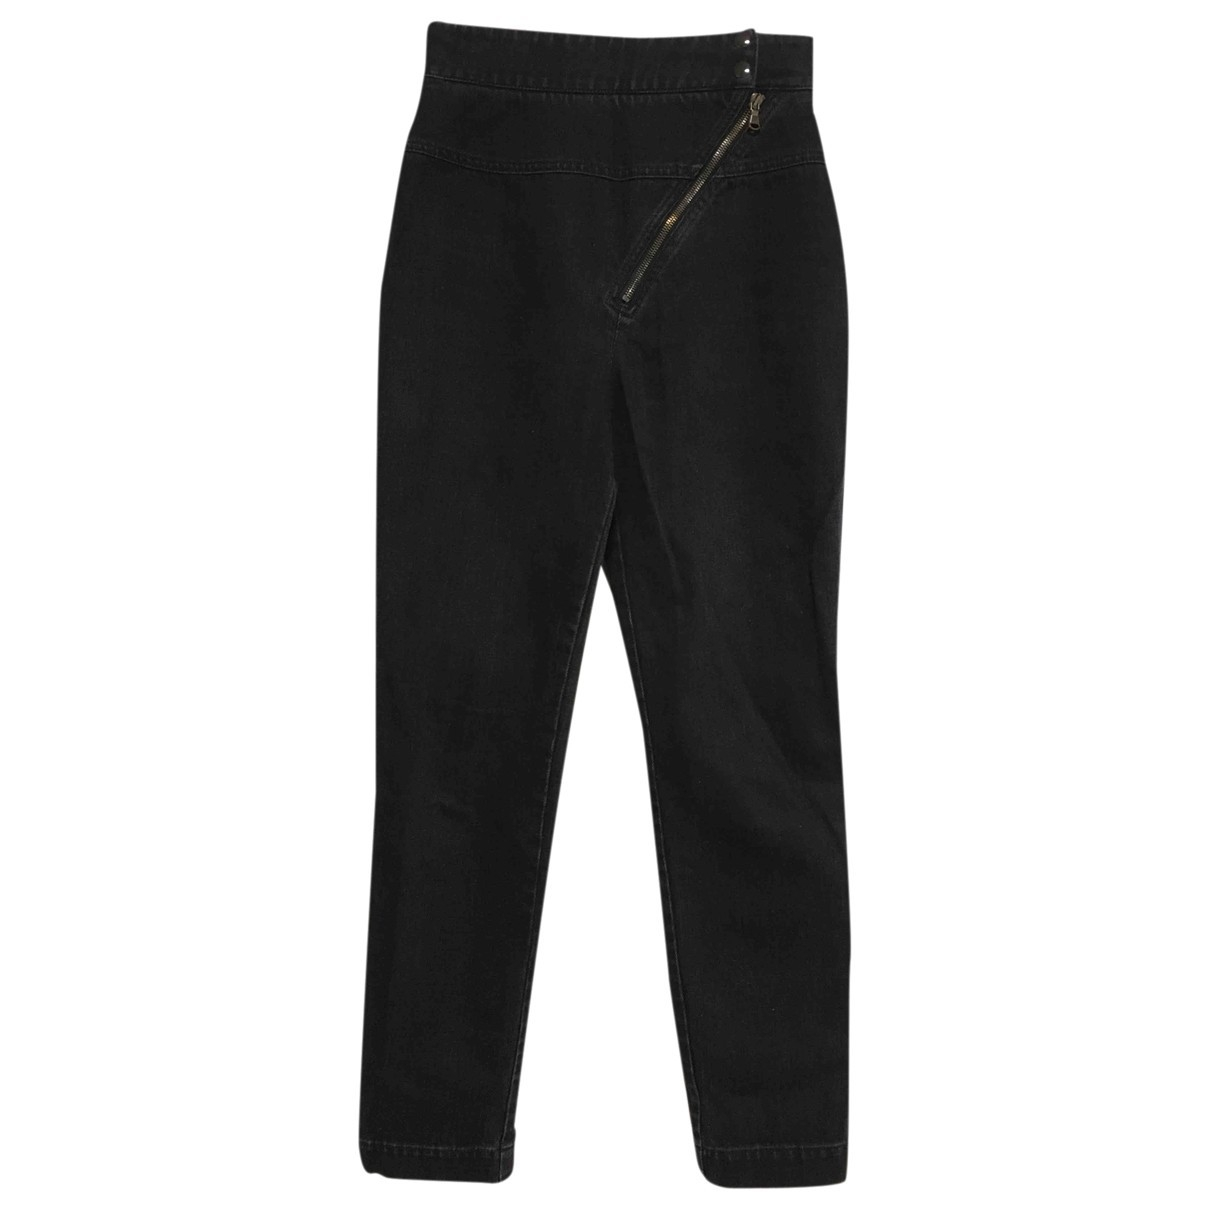 Roberto Cavalli \N Anthracite Denim - Jeans Trousers for Women 40 IT